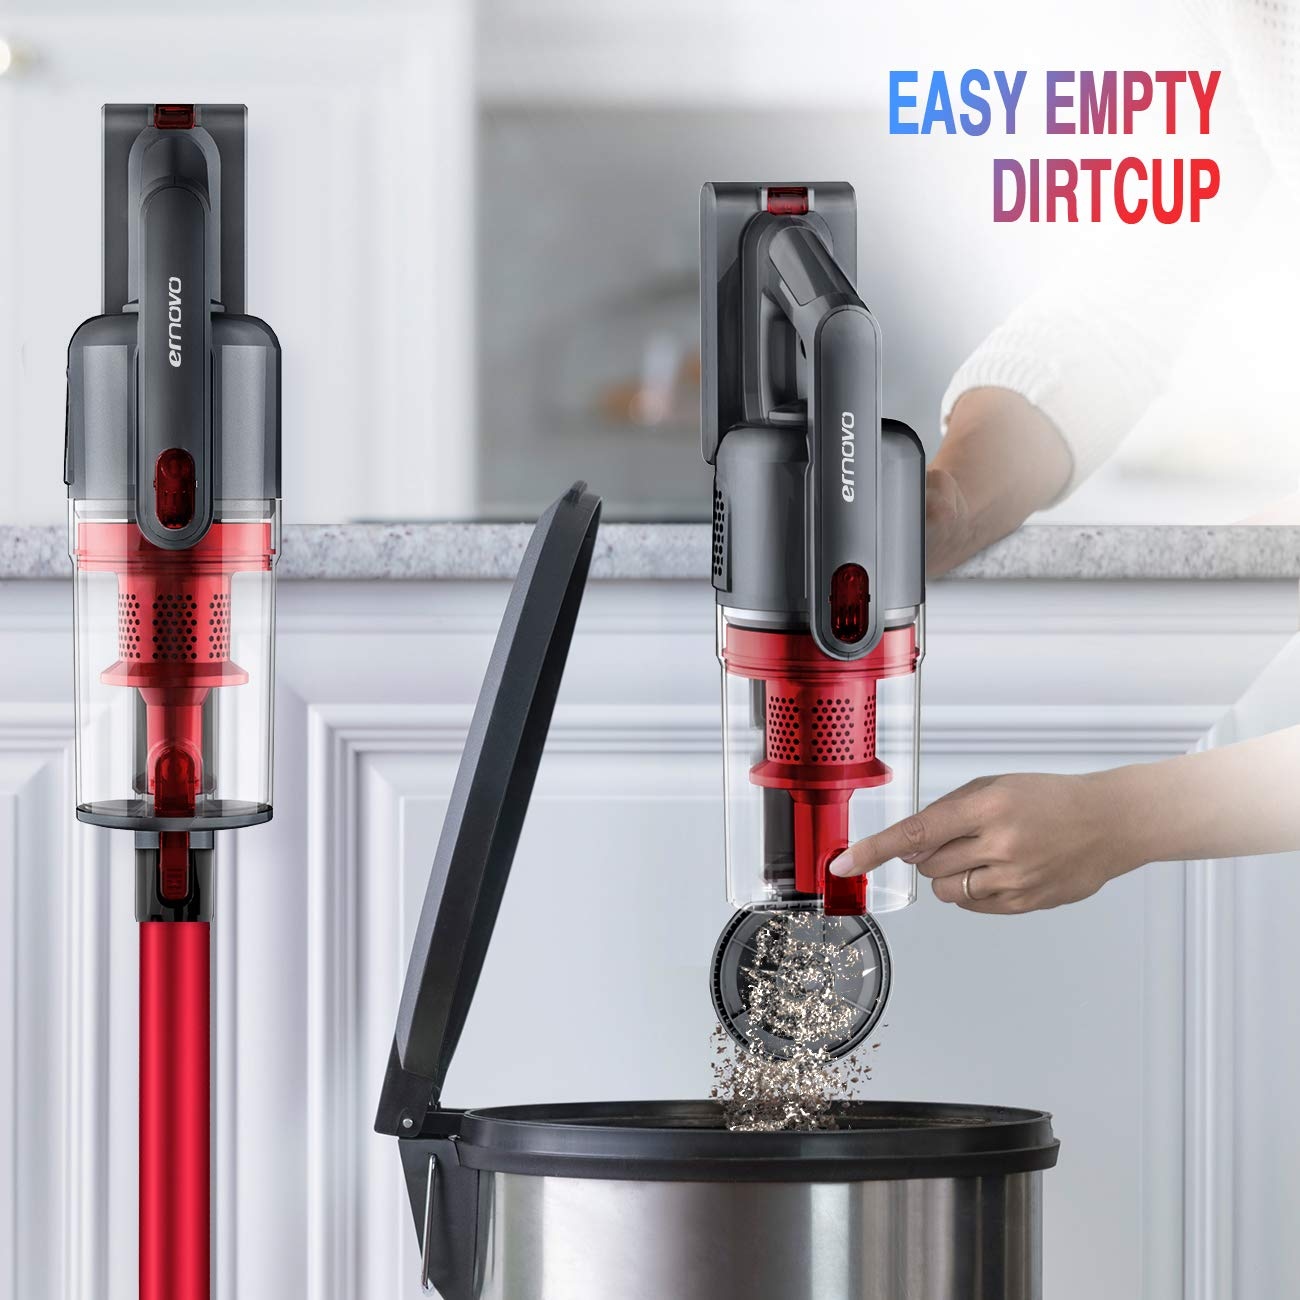 Ernovo Cordless Stick Vacuum Cleaner 4 in 1 Lightweight 9KPa Handheld Vacuum HEPA Filtration 2 Speed Suction LED Light for Dust 3 Year Warranty Home Car or Upholstery Cleaning Pet Hair